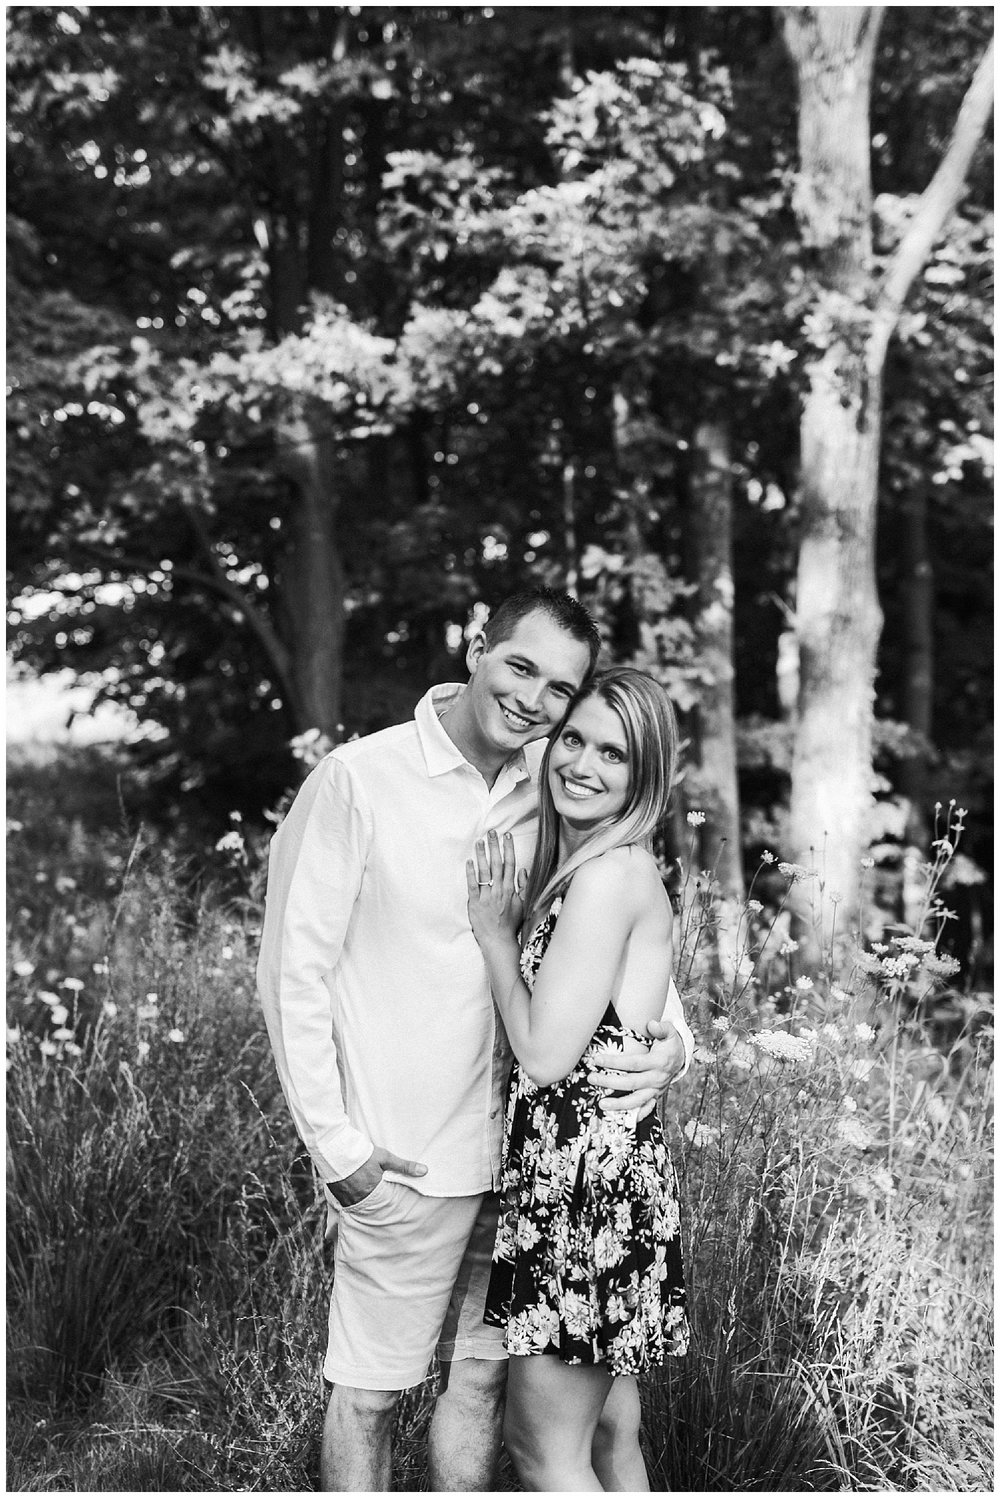 lindybeth photography - engagement pictures - alex + curtis-185.jpg